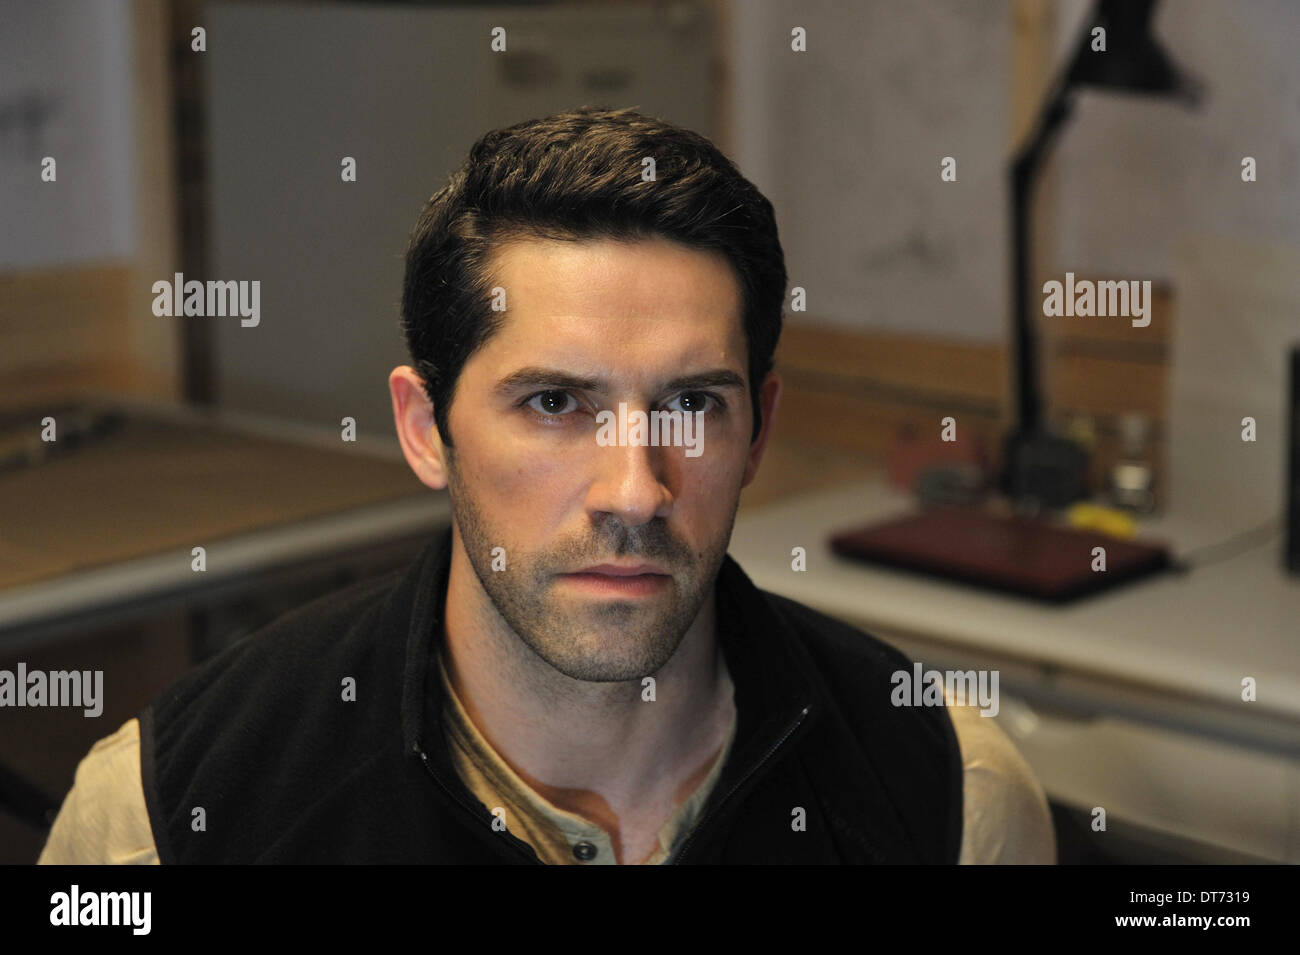 SCOTT ADKINS LEGENDÄREN: TOMB OF THE DRAGON (2013) Stockbild